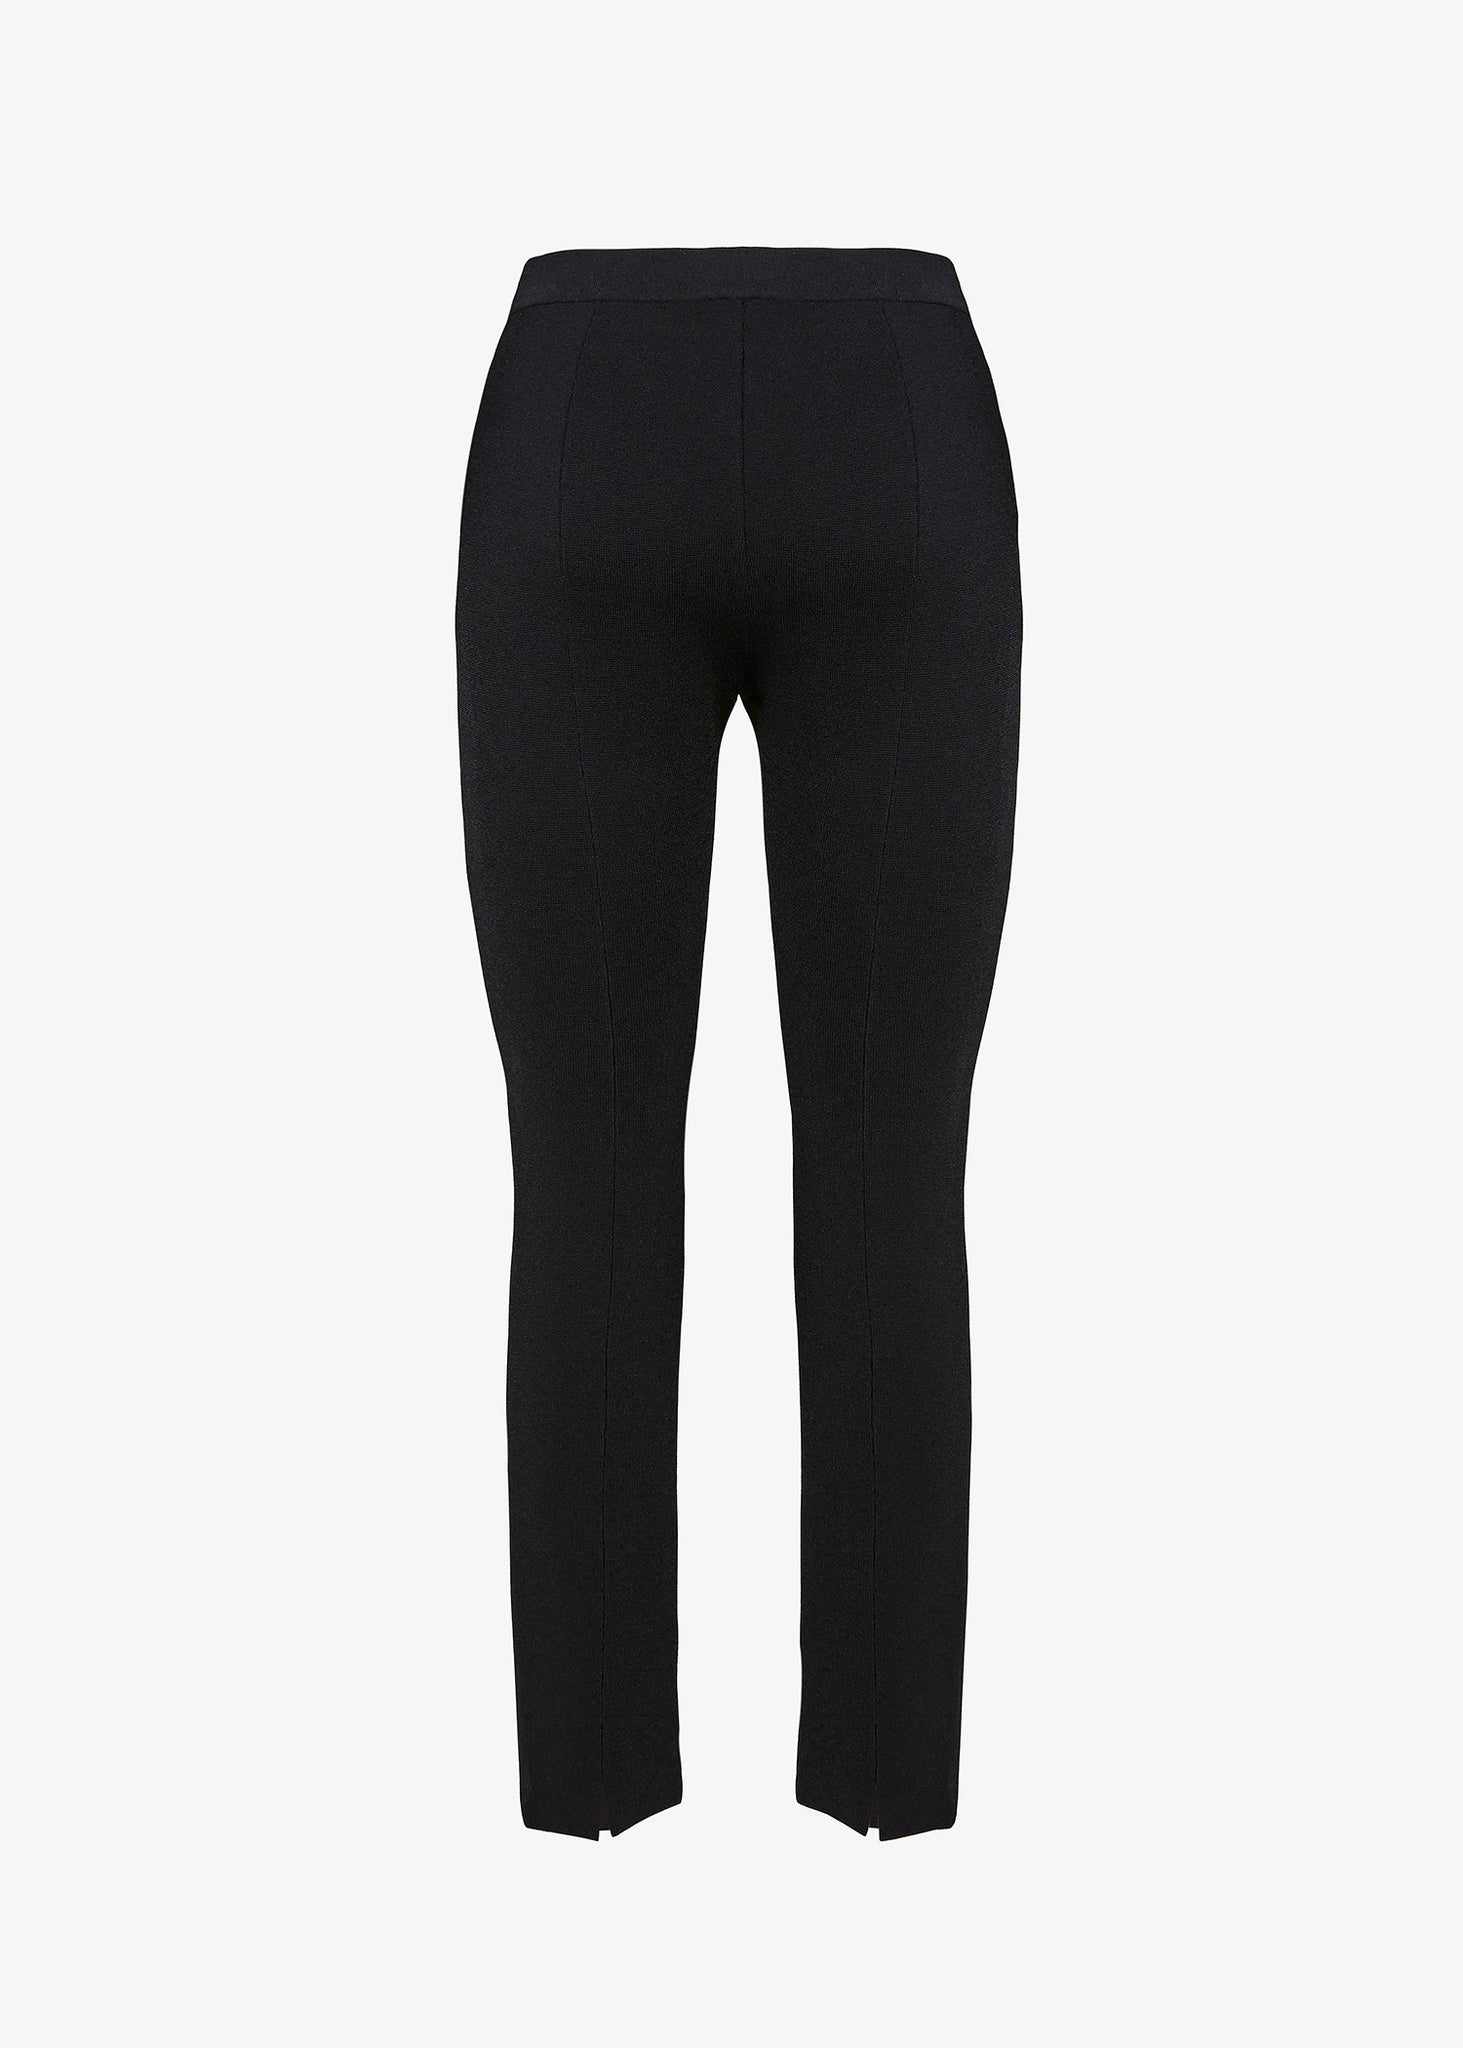 The Back-Split Lo Legging